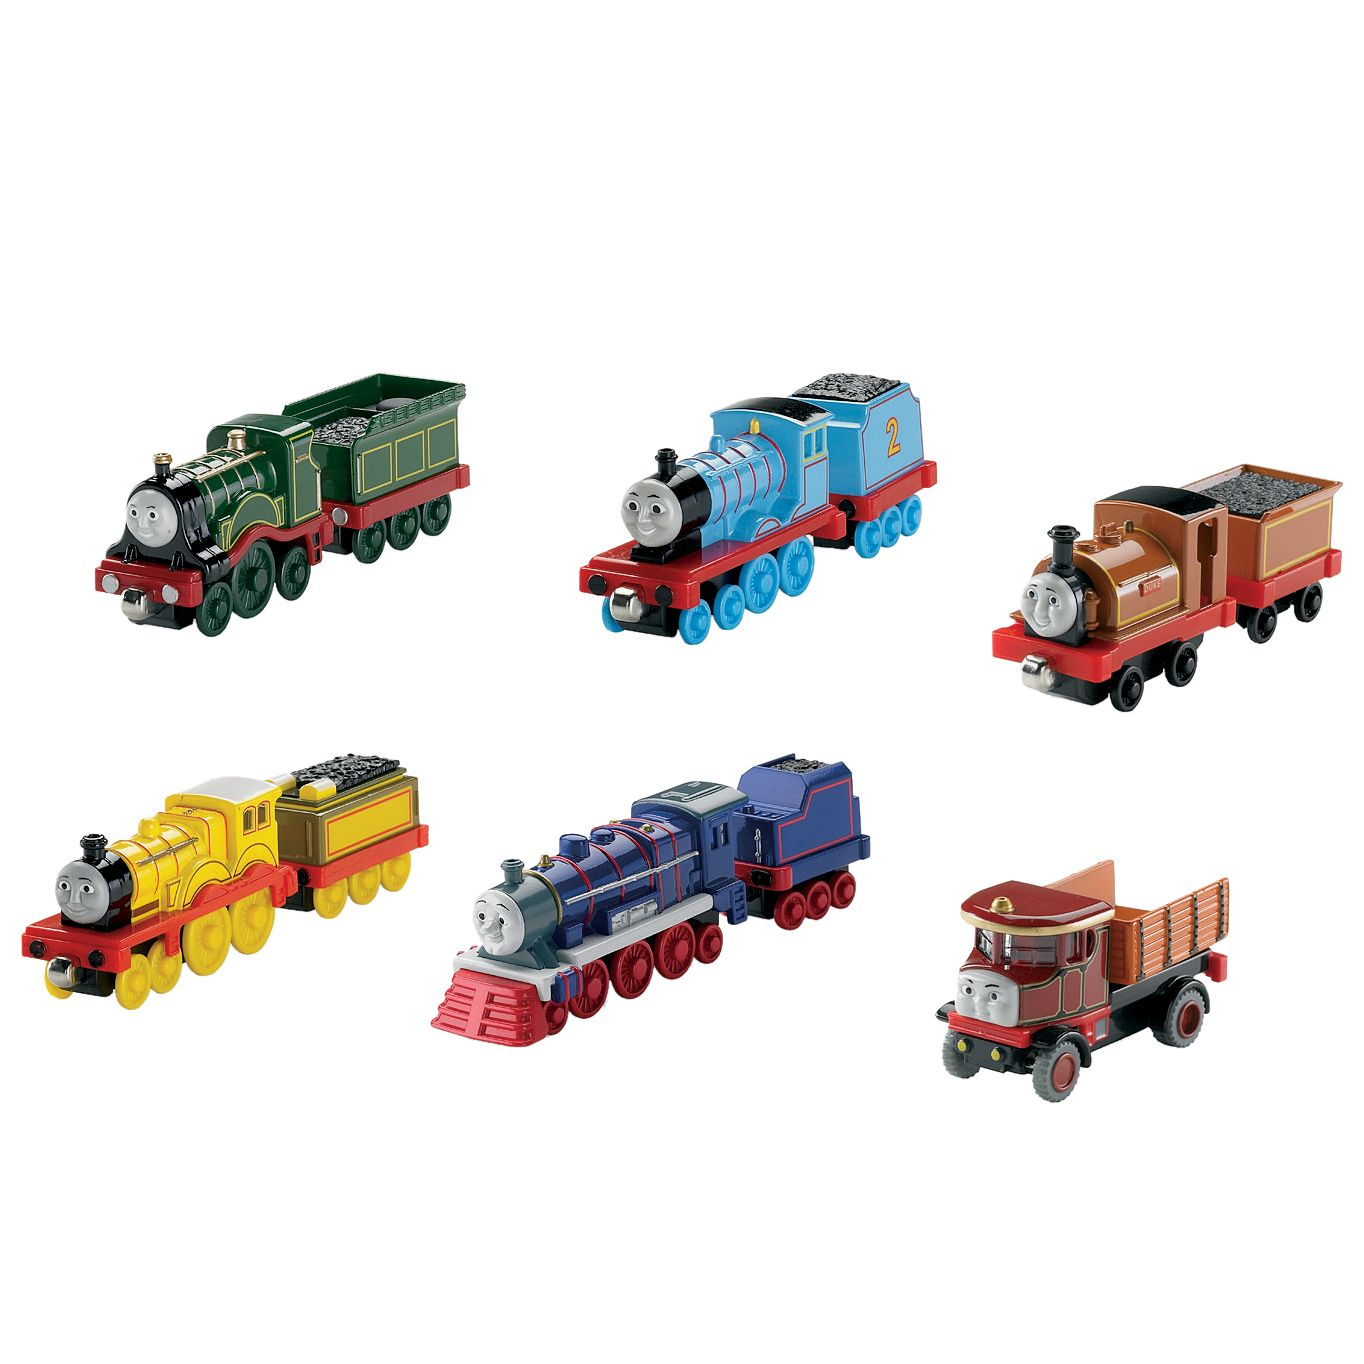 Thomas the Tank Engine Take-n-Play: Medium Sized Engine, Assorted